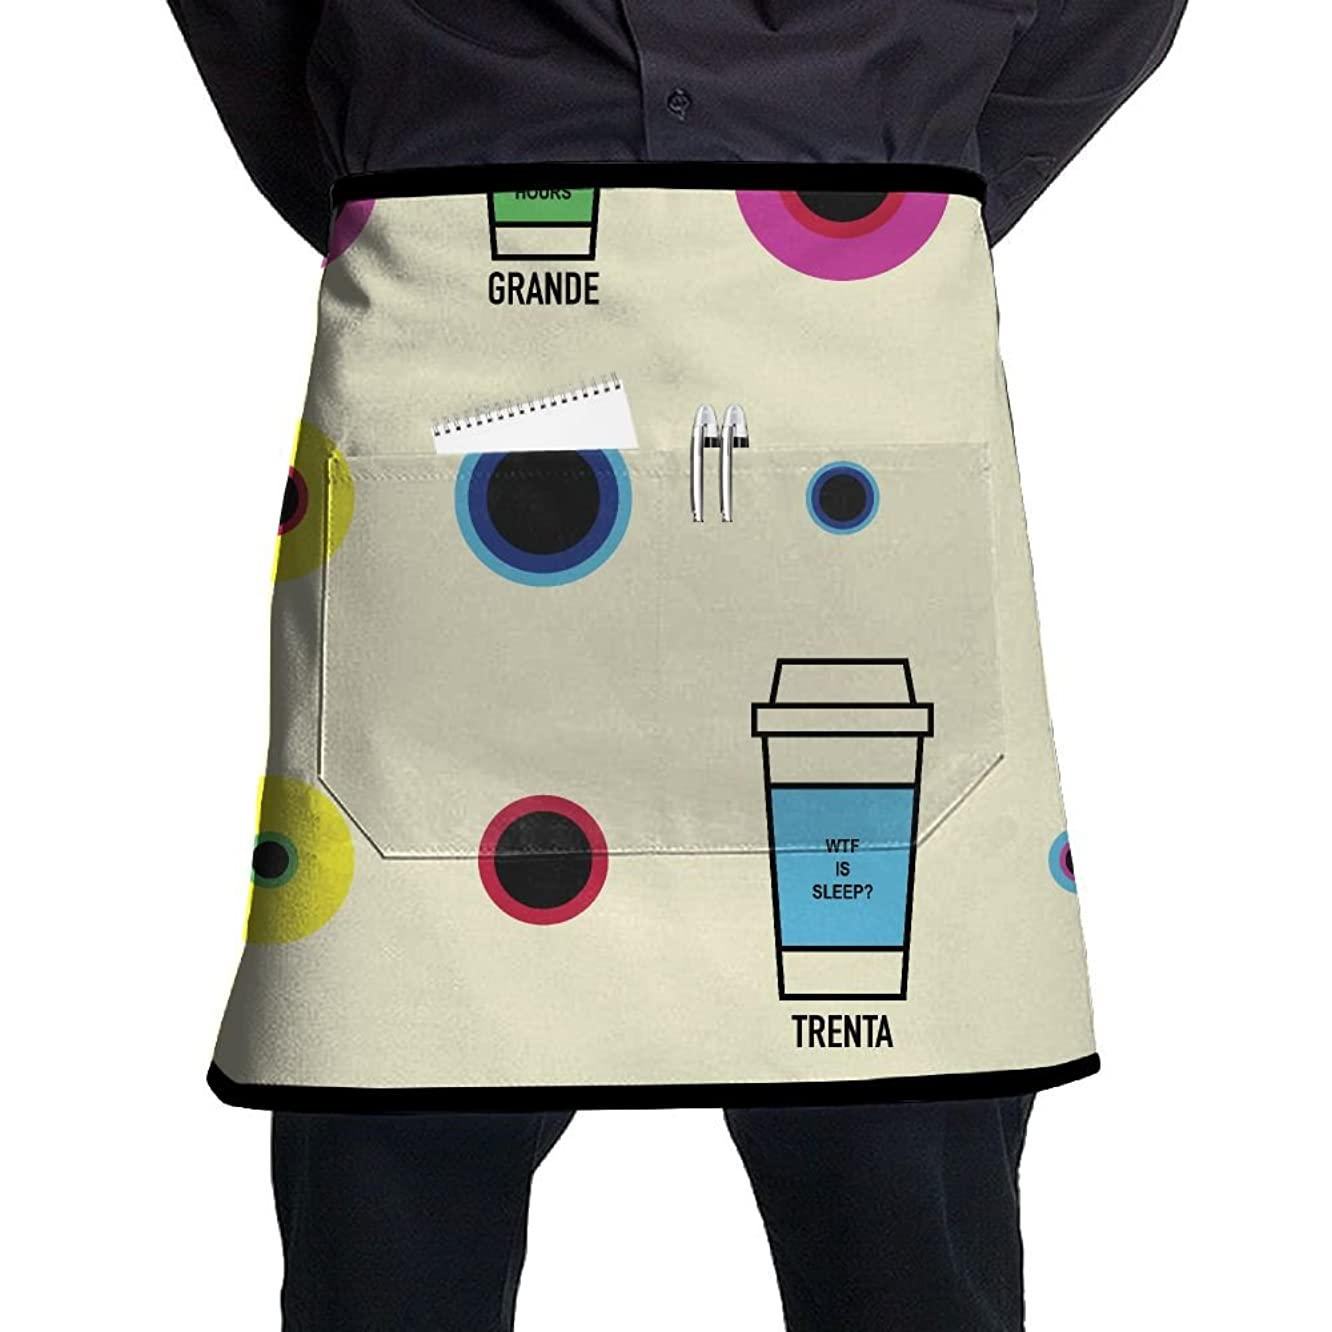 Tall Grande Venti Trenta Slept Wtf Adjustable Apron With Pocket For Grilling Bacon Chef Waitress Great Gift For Wife Ladies Men Boyfriend